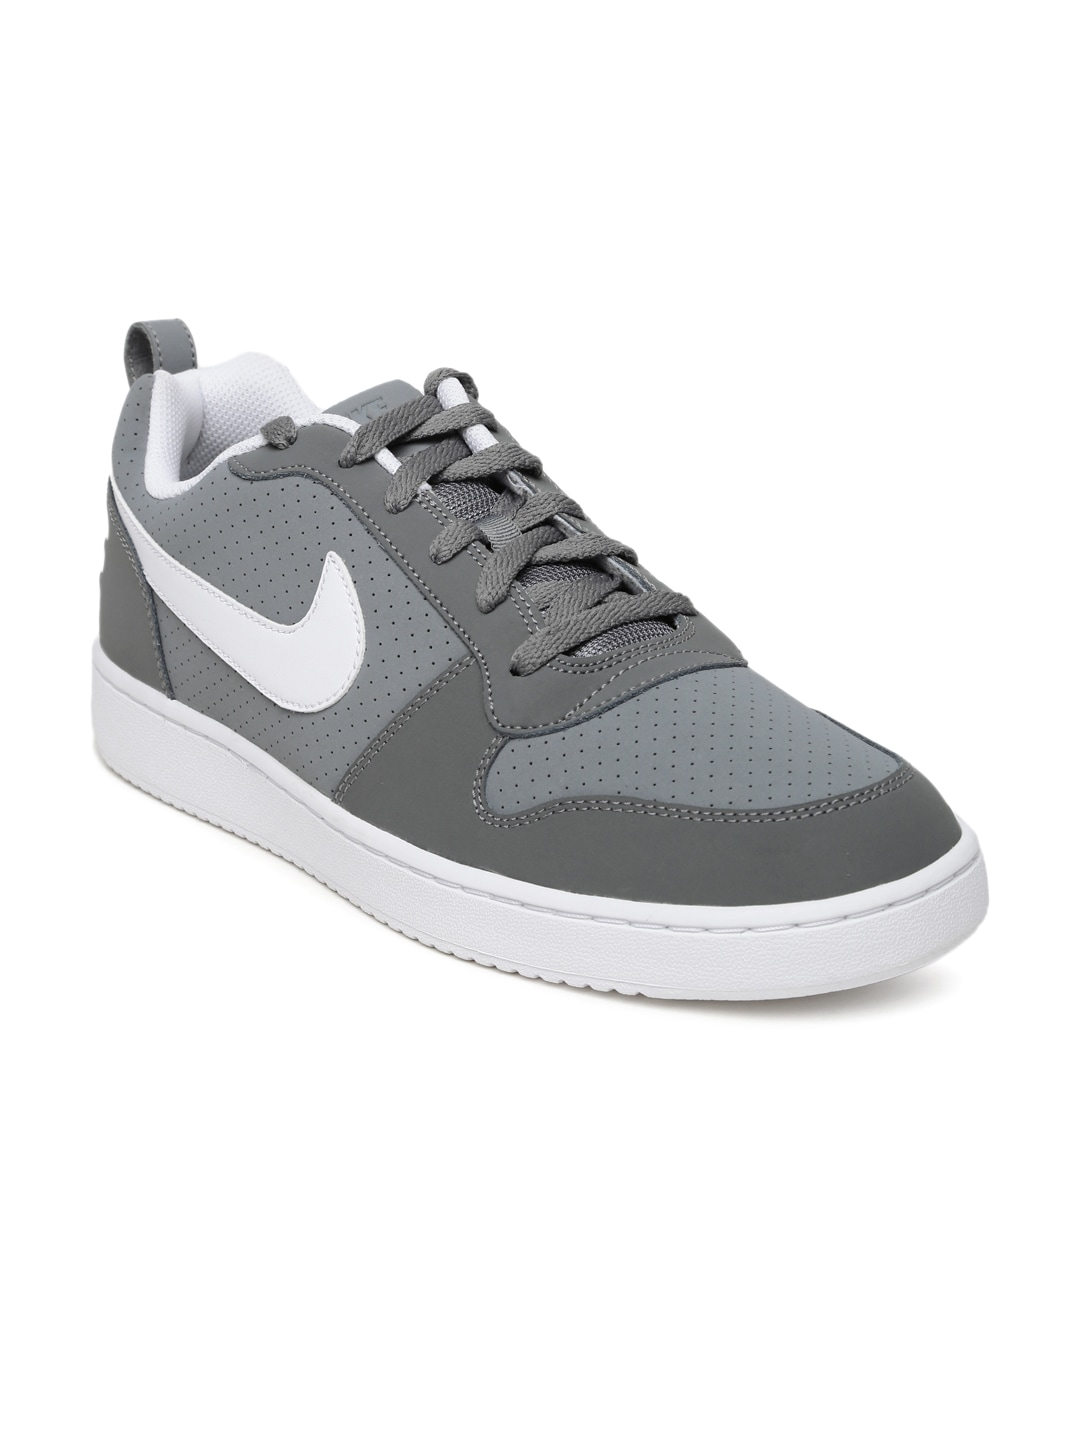 wholesale sales wholesale online new lifestyle Nike 838937-011 Men Grey Court Borough Sneakers - Best ...